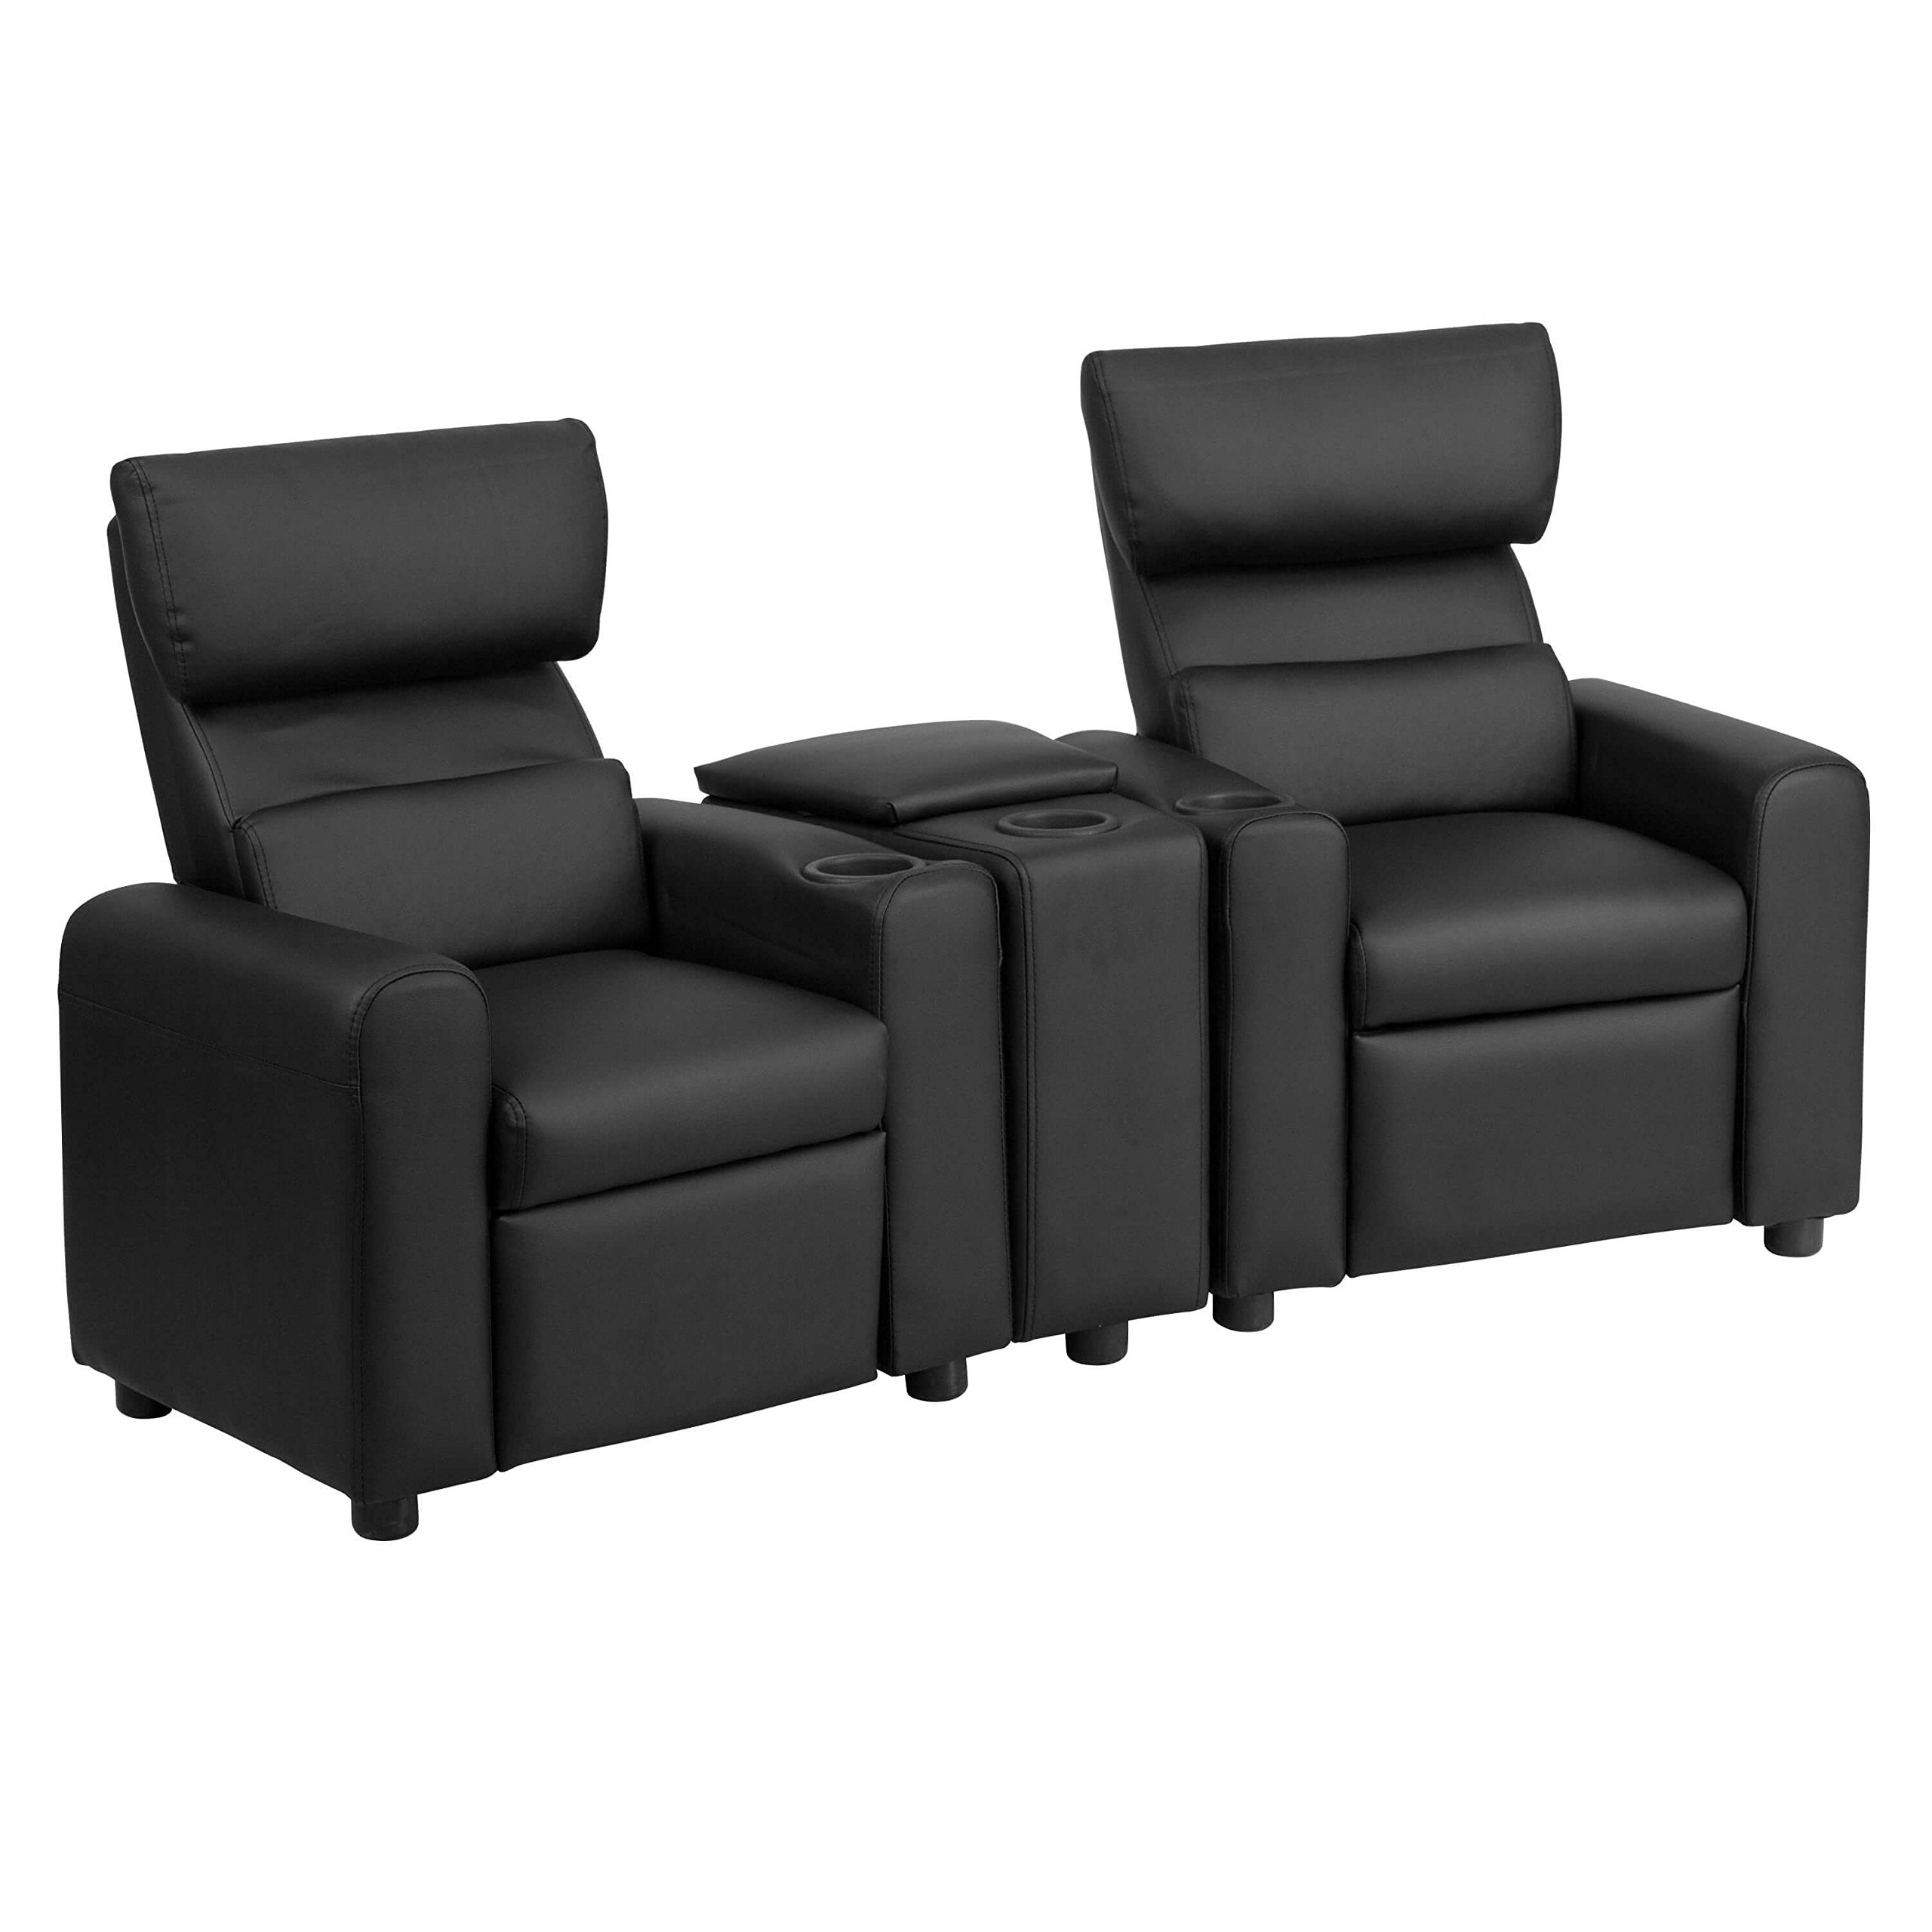 Home Theatre Seating - Garland Media Room Seating by cubicles.com - Home Theatre Seating